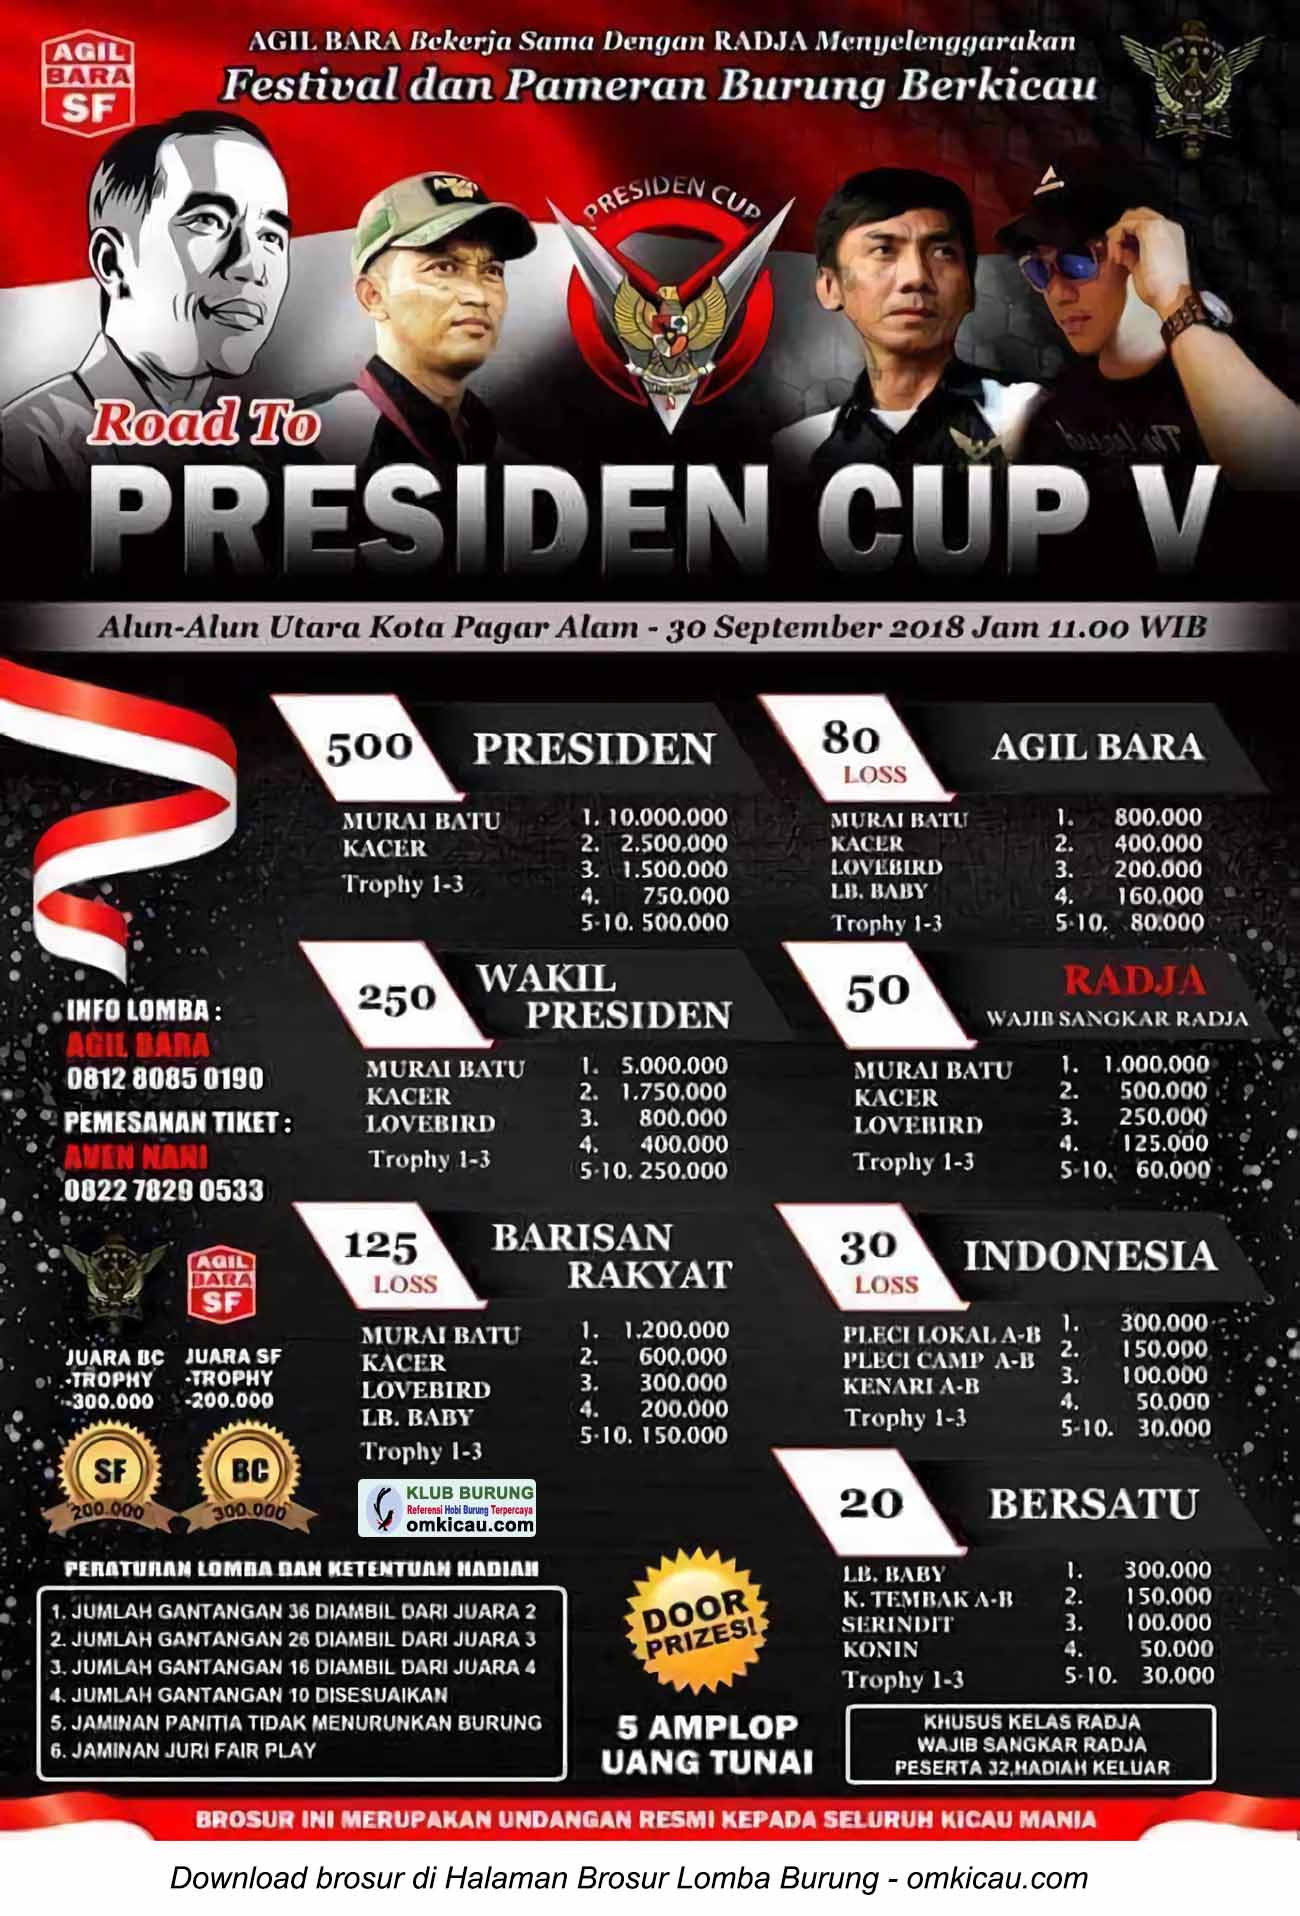 Road to Presiden Cup V Pagar Alam